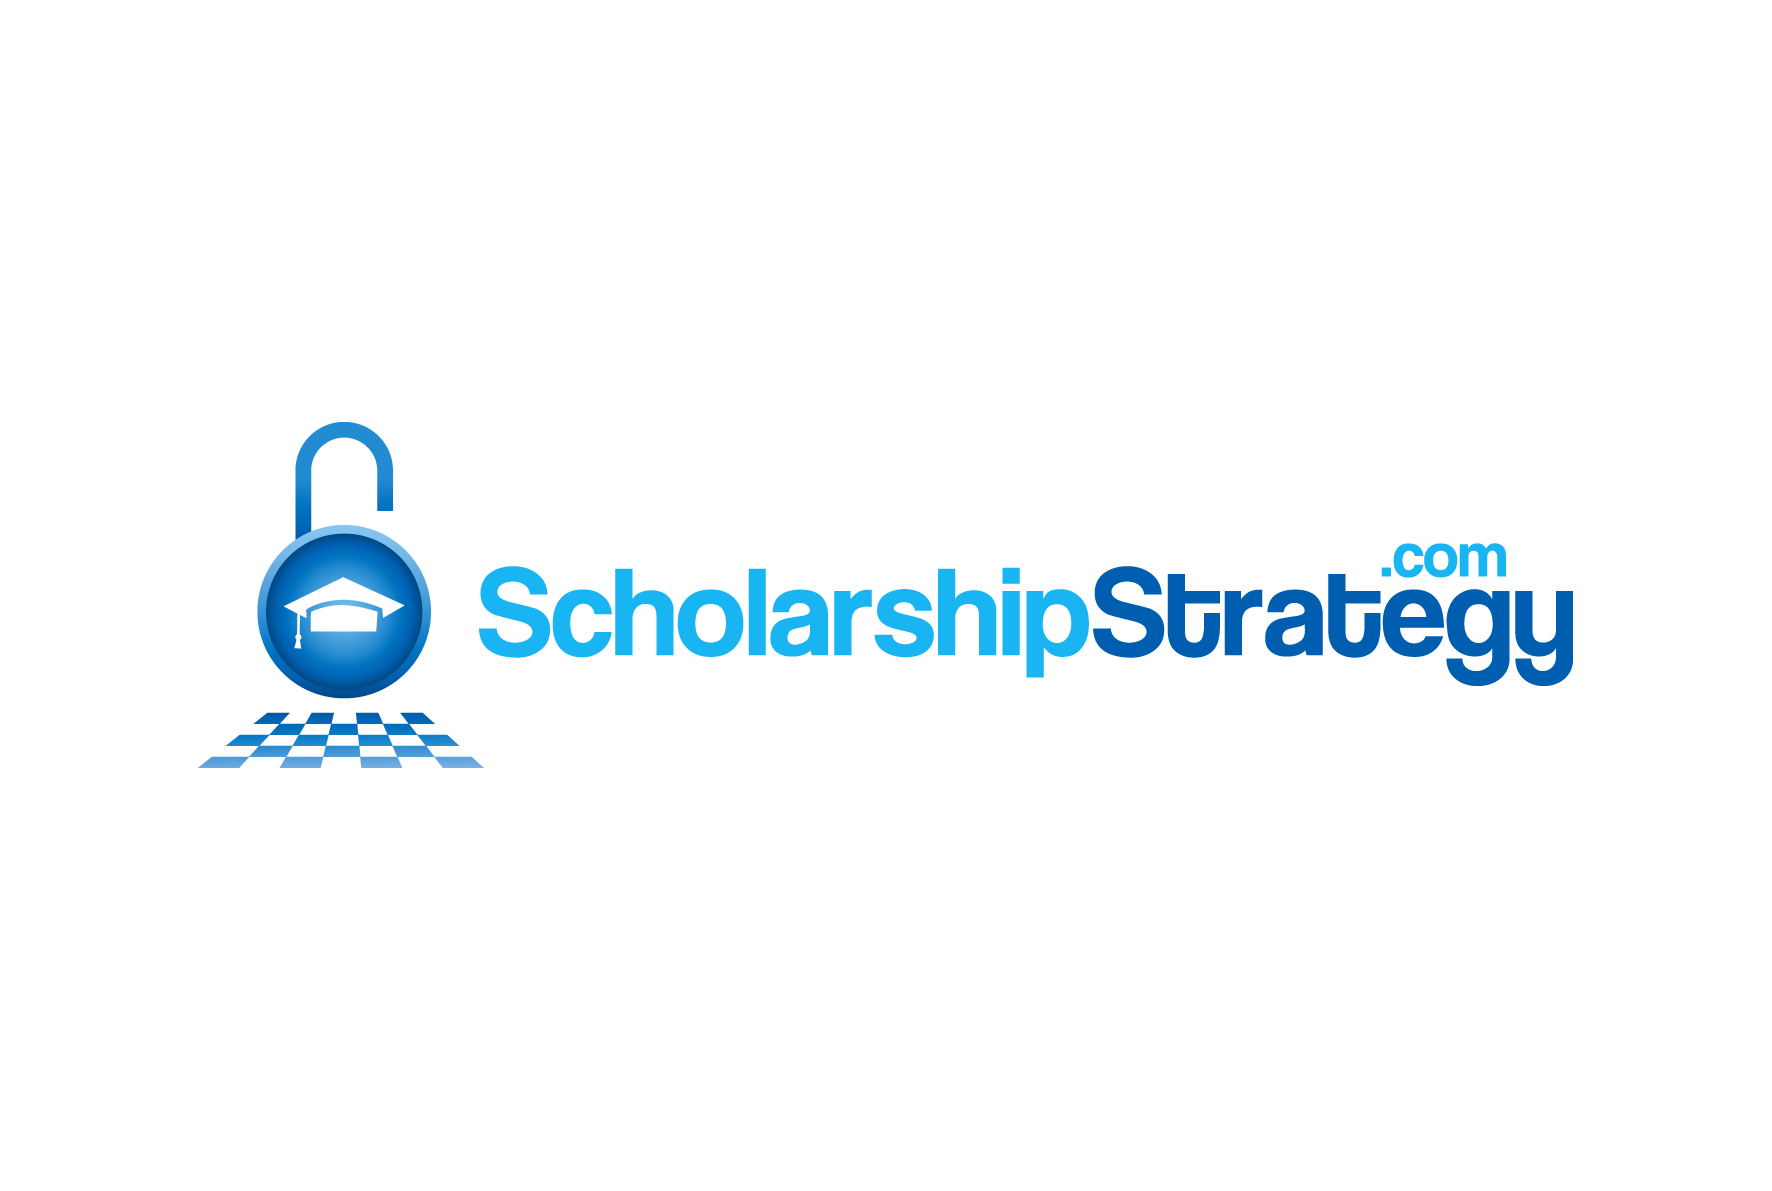 Logo Design by luna - Entry No. 69 in the Logo Design Contest Captivating Logo Design for Scholarshipstrategy.com.